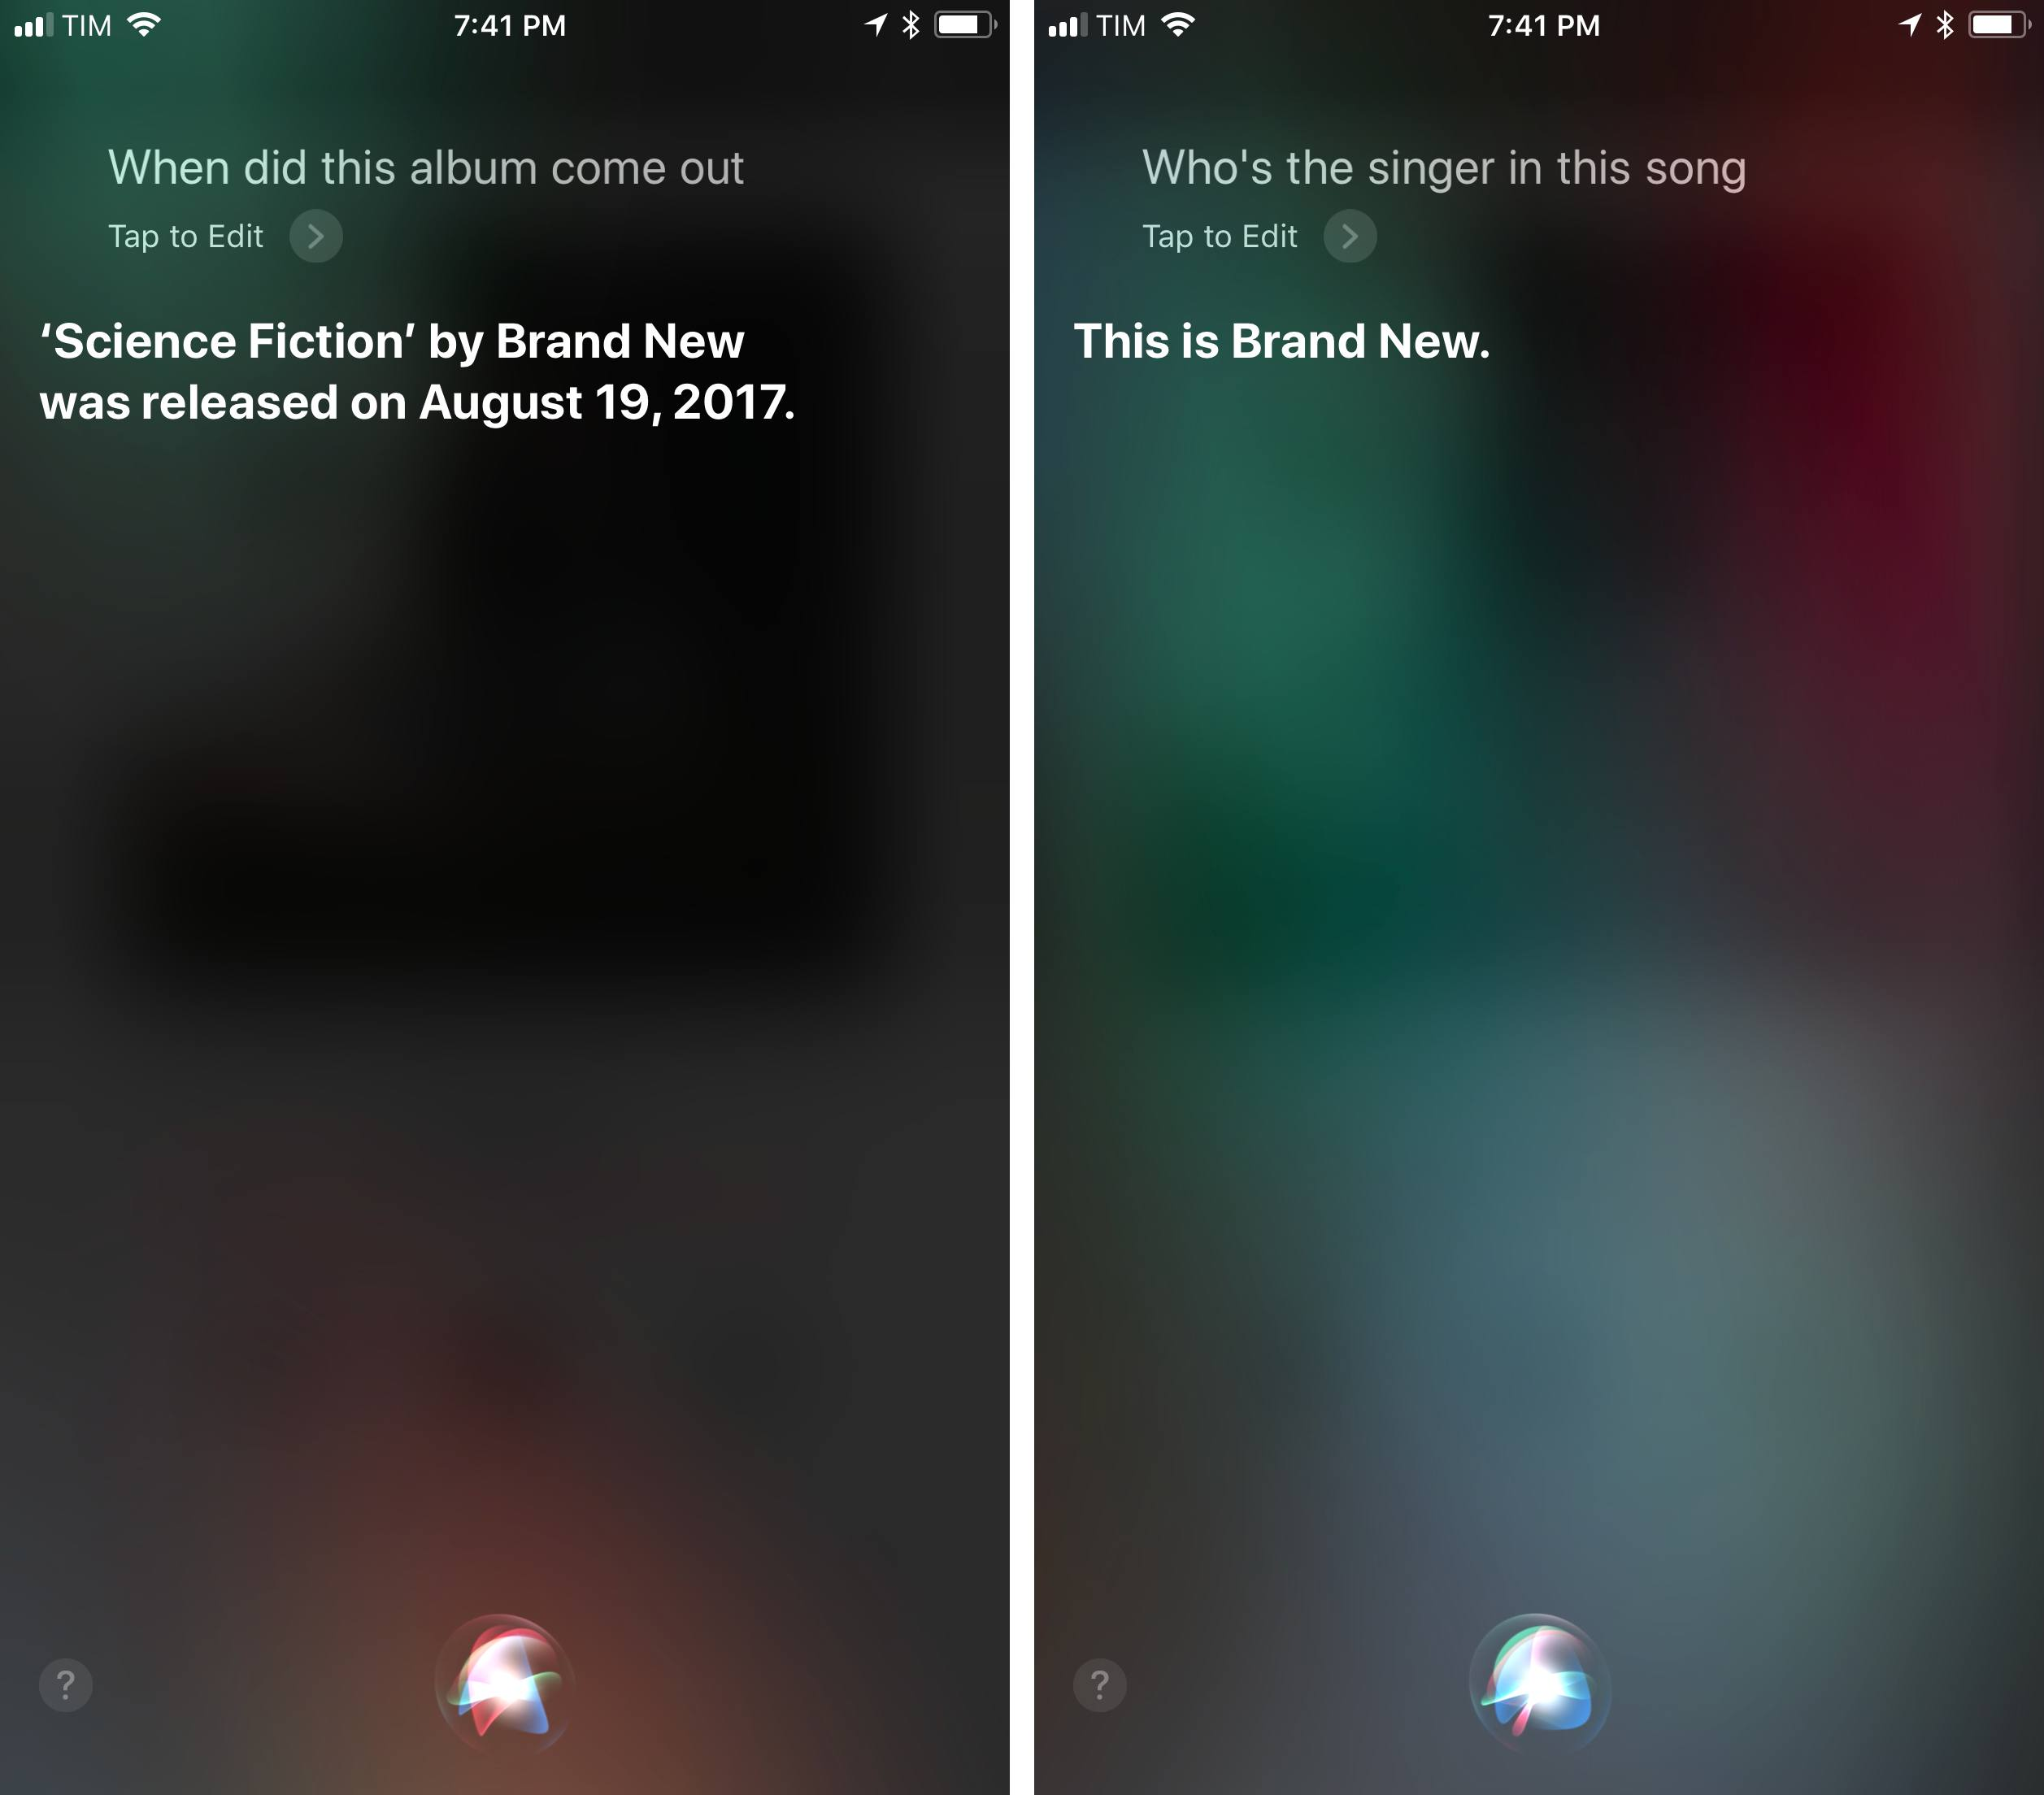 Deeper music knowledge will likely come to Siri in the future.